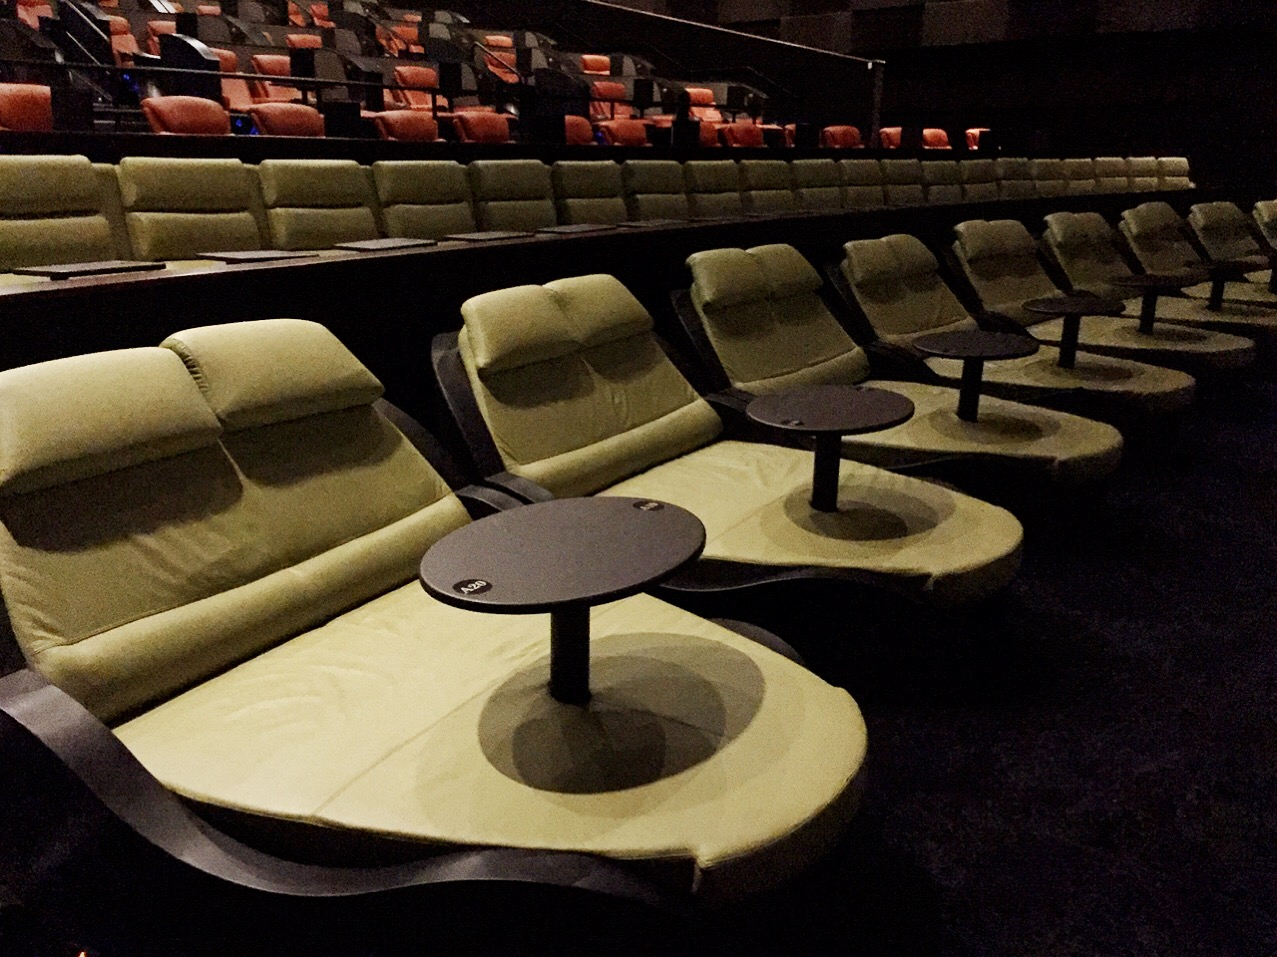 sofa theater pasadena off white leather movie lounge chairs ipic theaters the